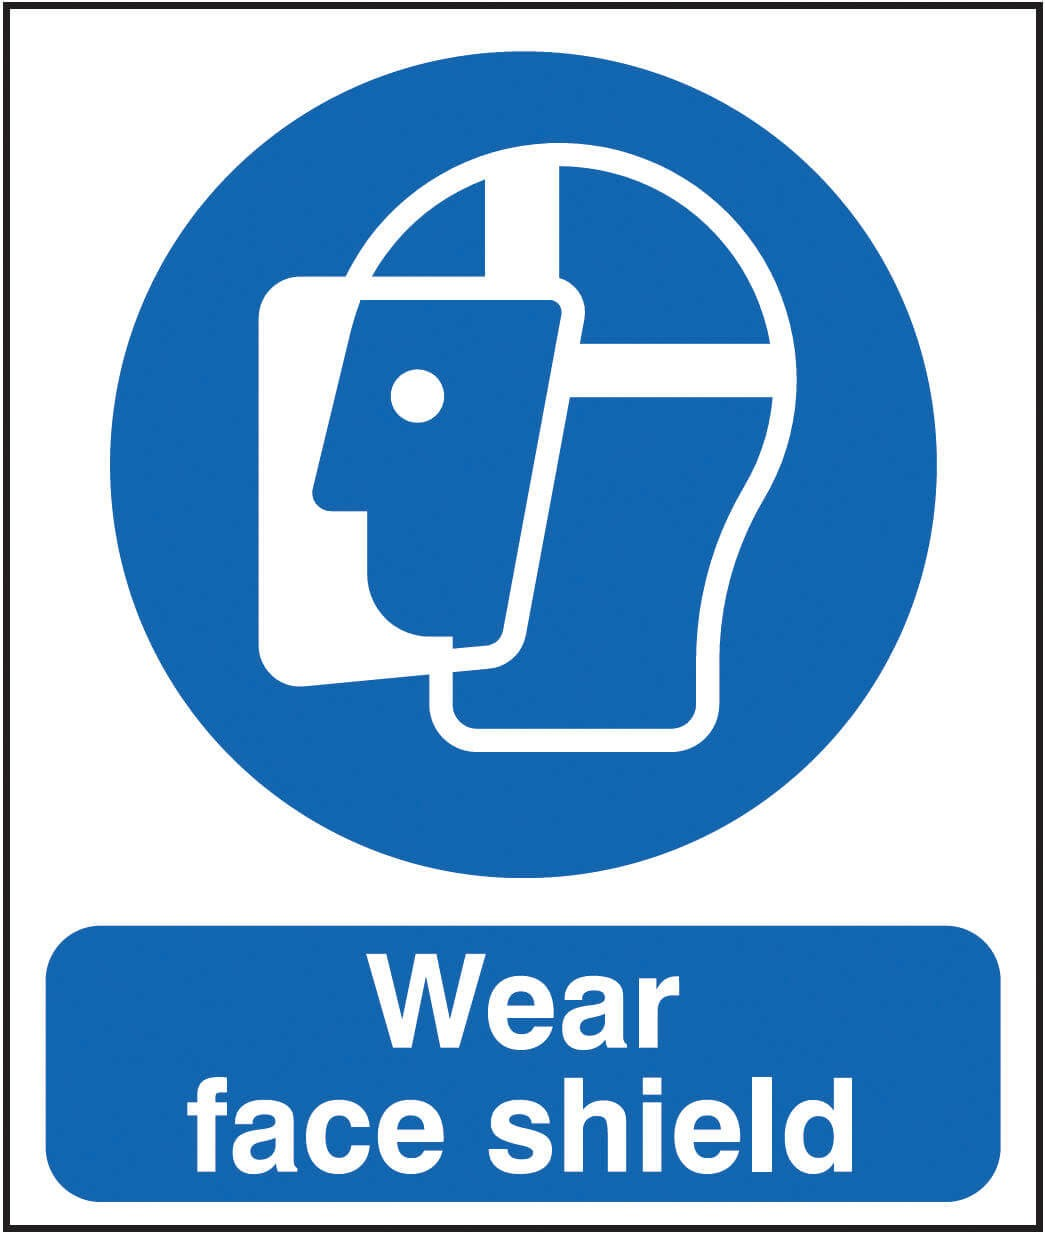 Wear Face Shield - Dalvie Systems